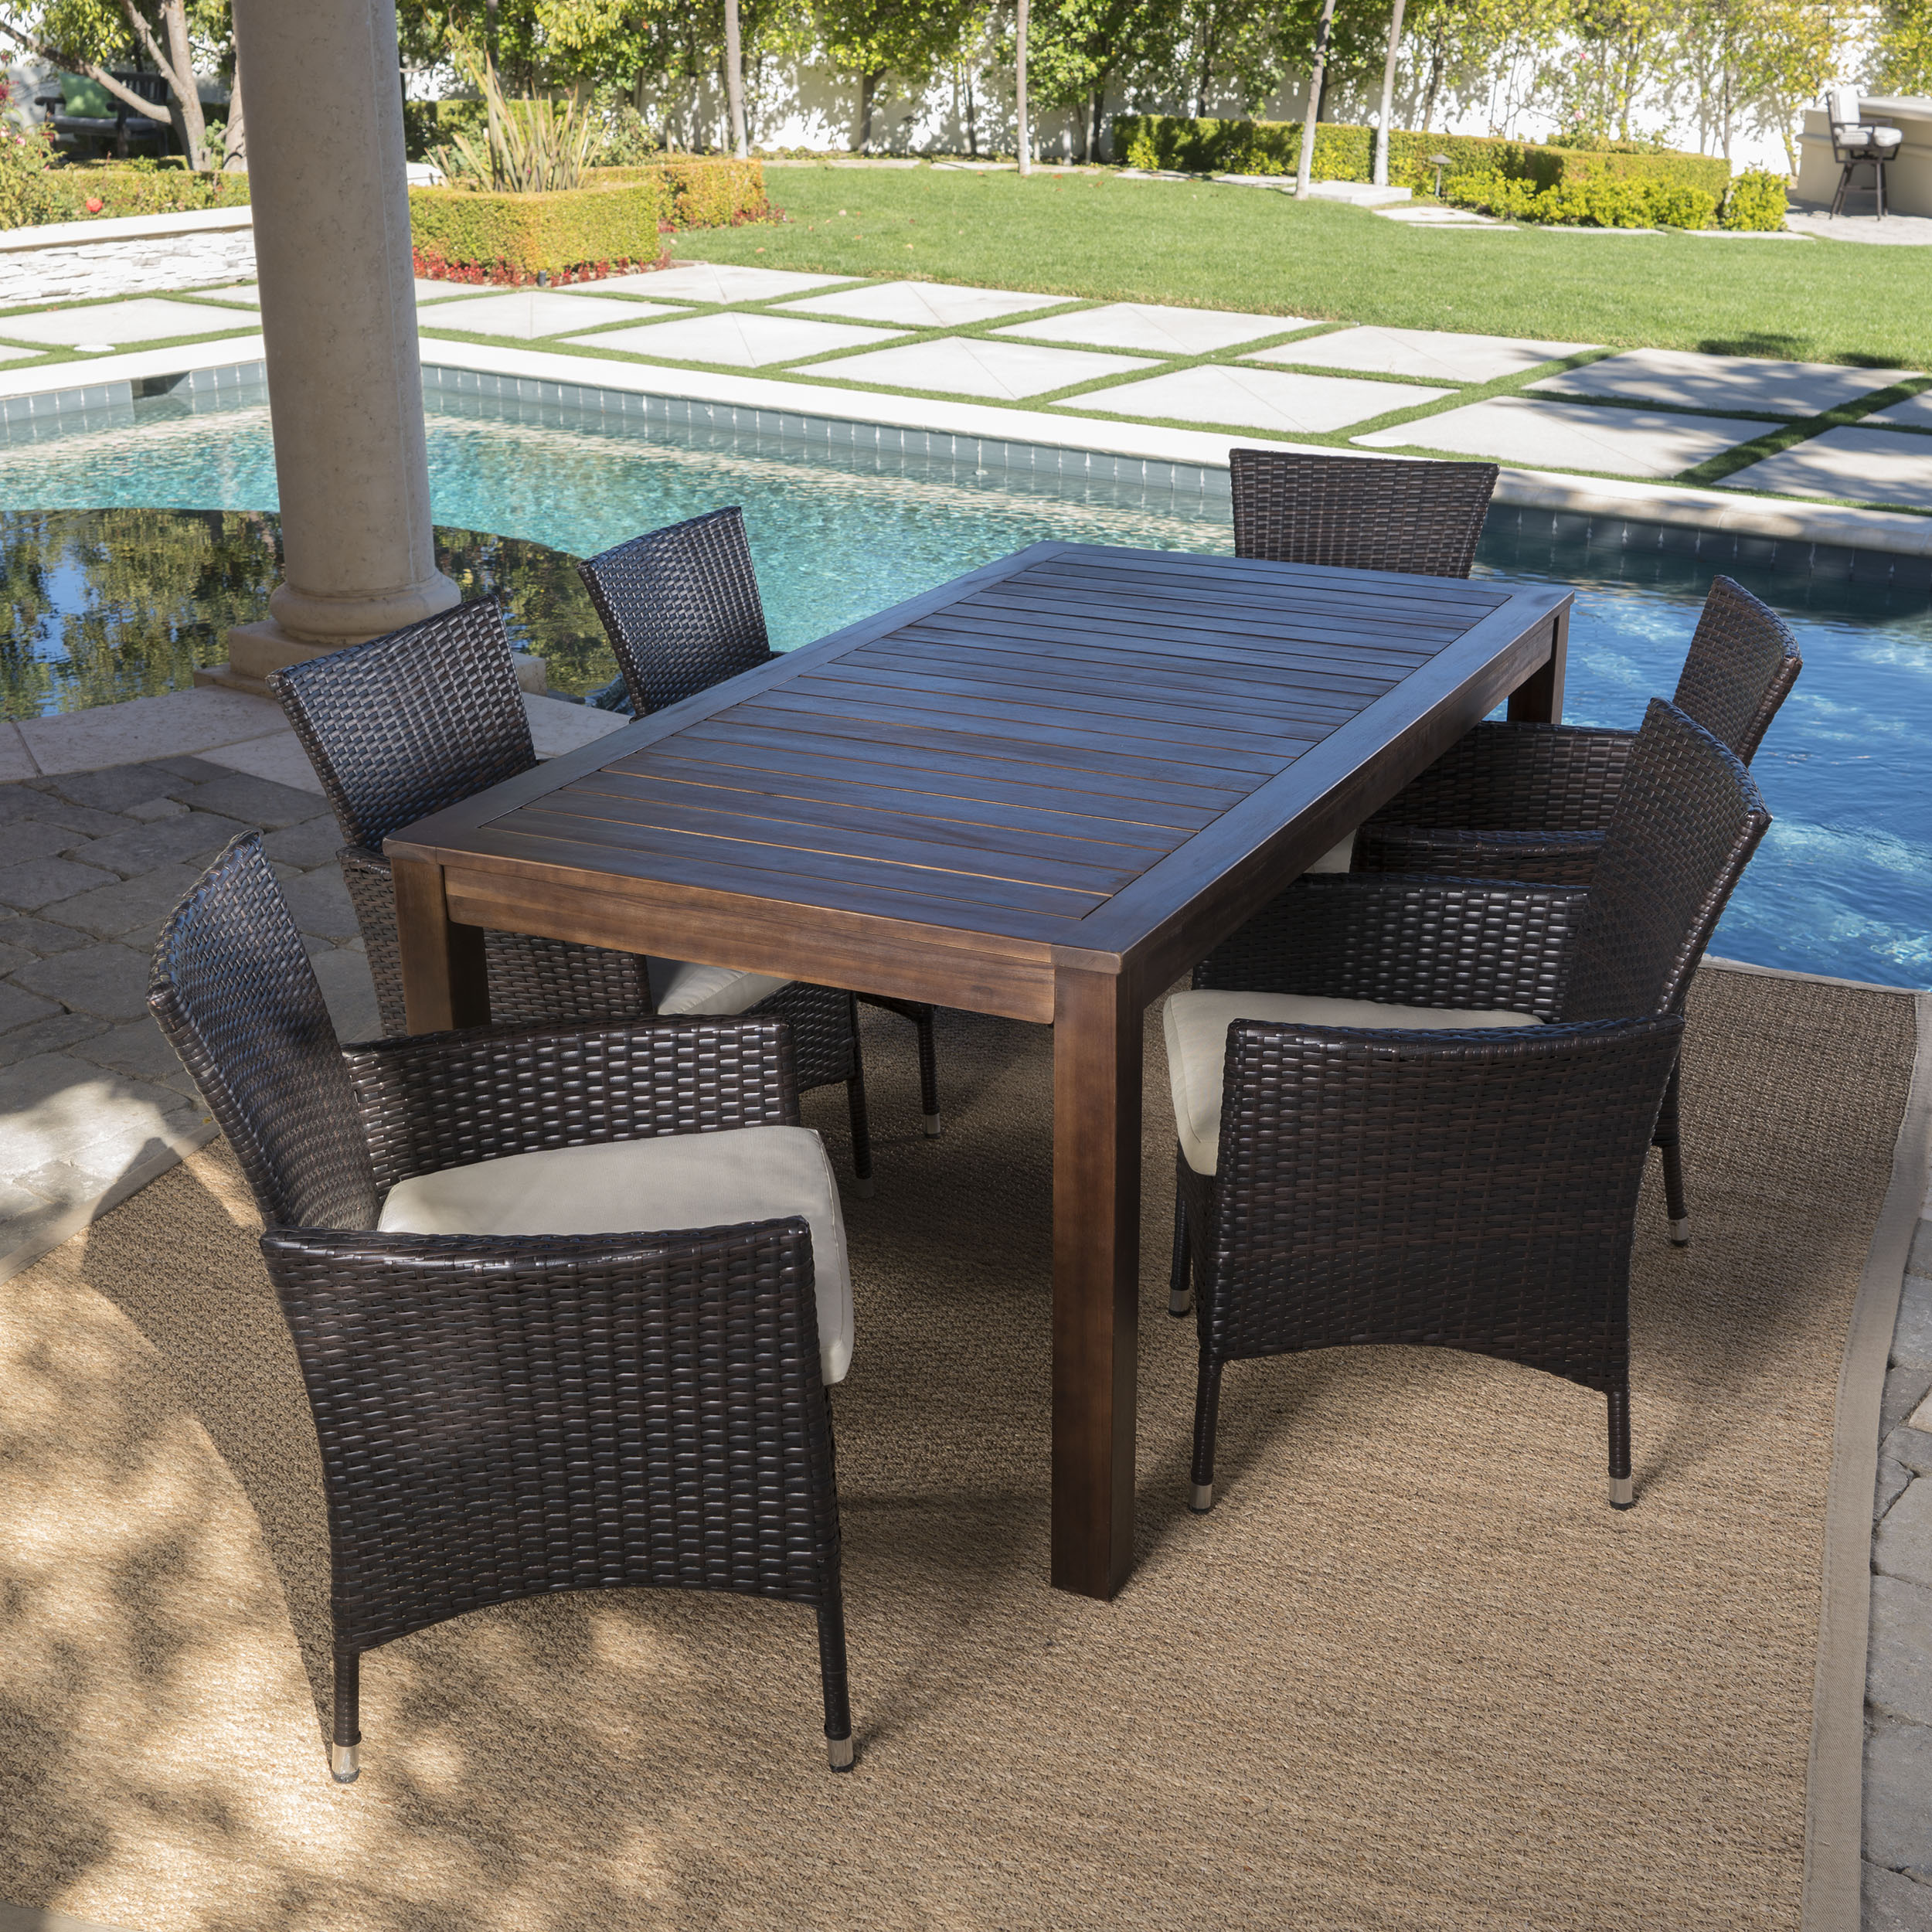 Taft Outdoor 7 Piece Dining Set with Wood Table and Wicker Chairs with Water Resistant Cushions, Beige